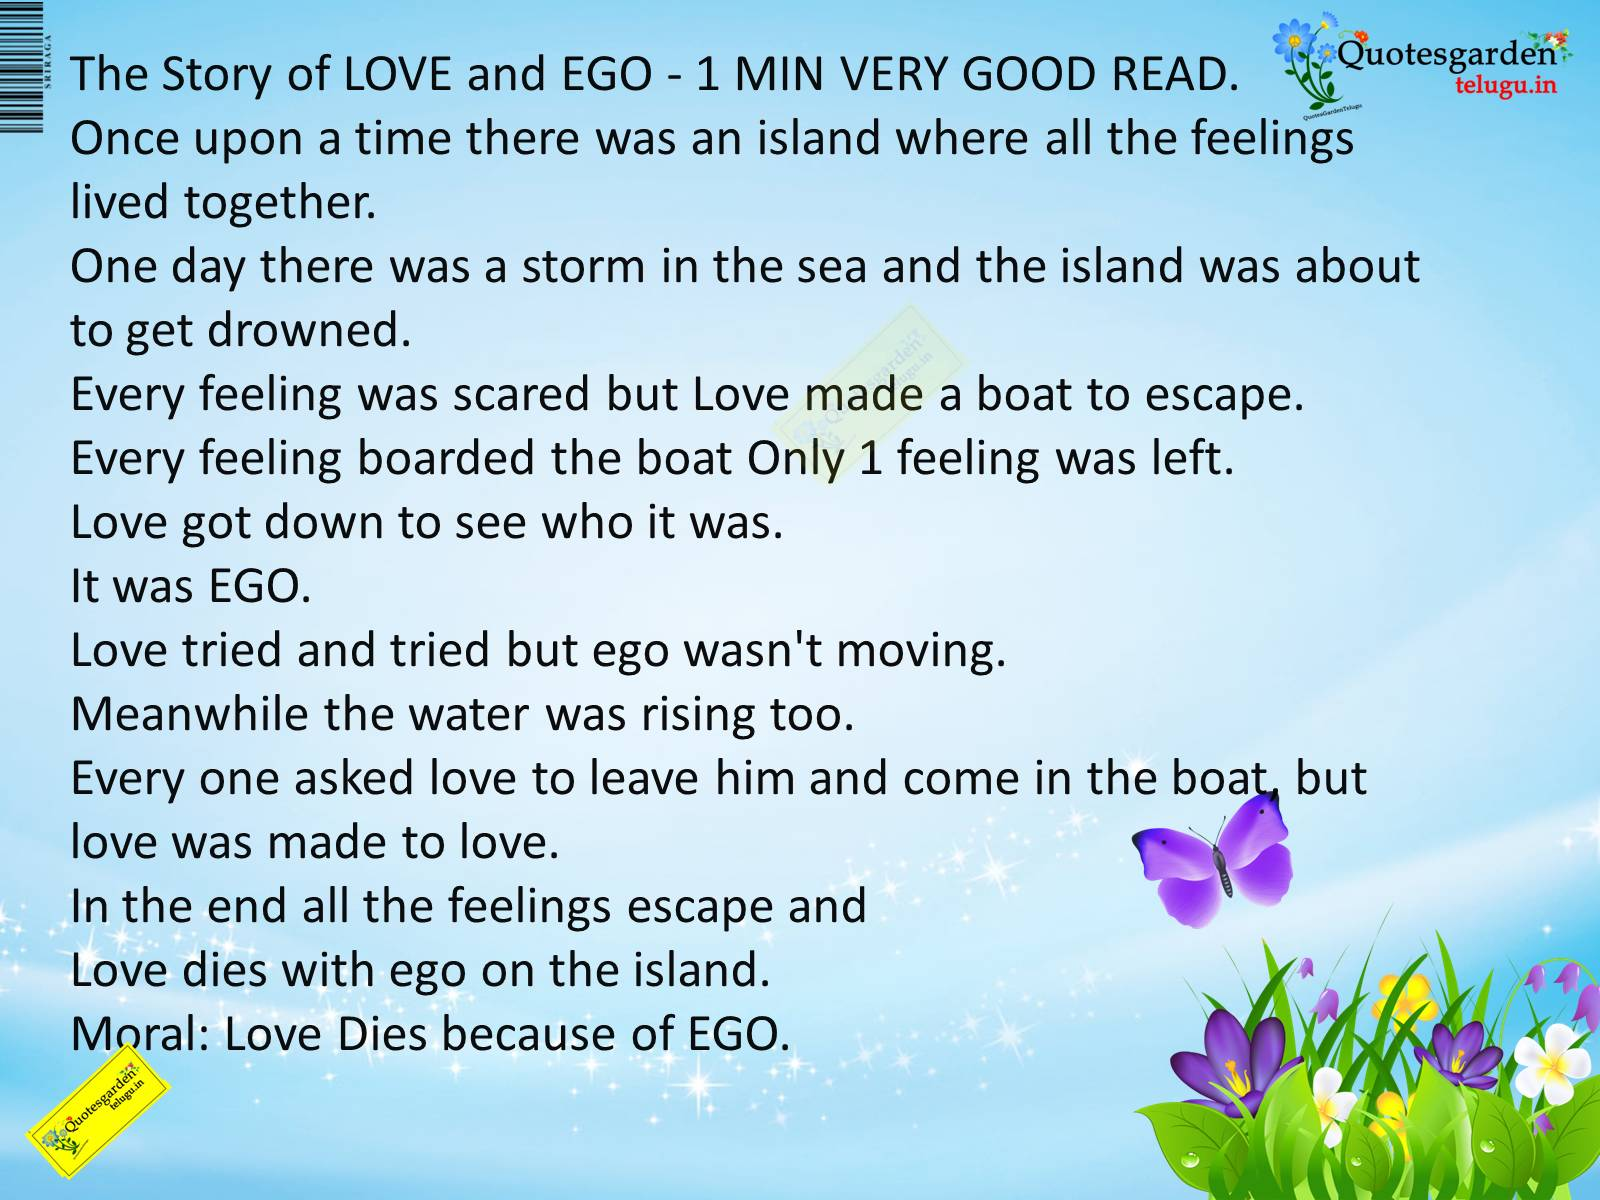 Love dies because of ego - Others Forum